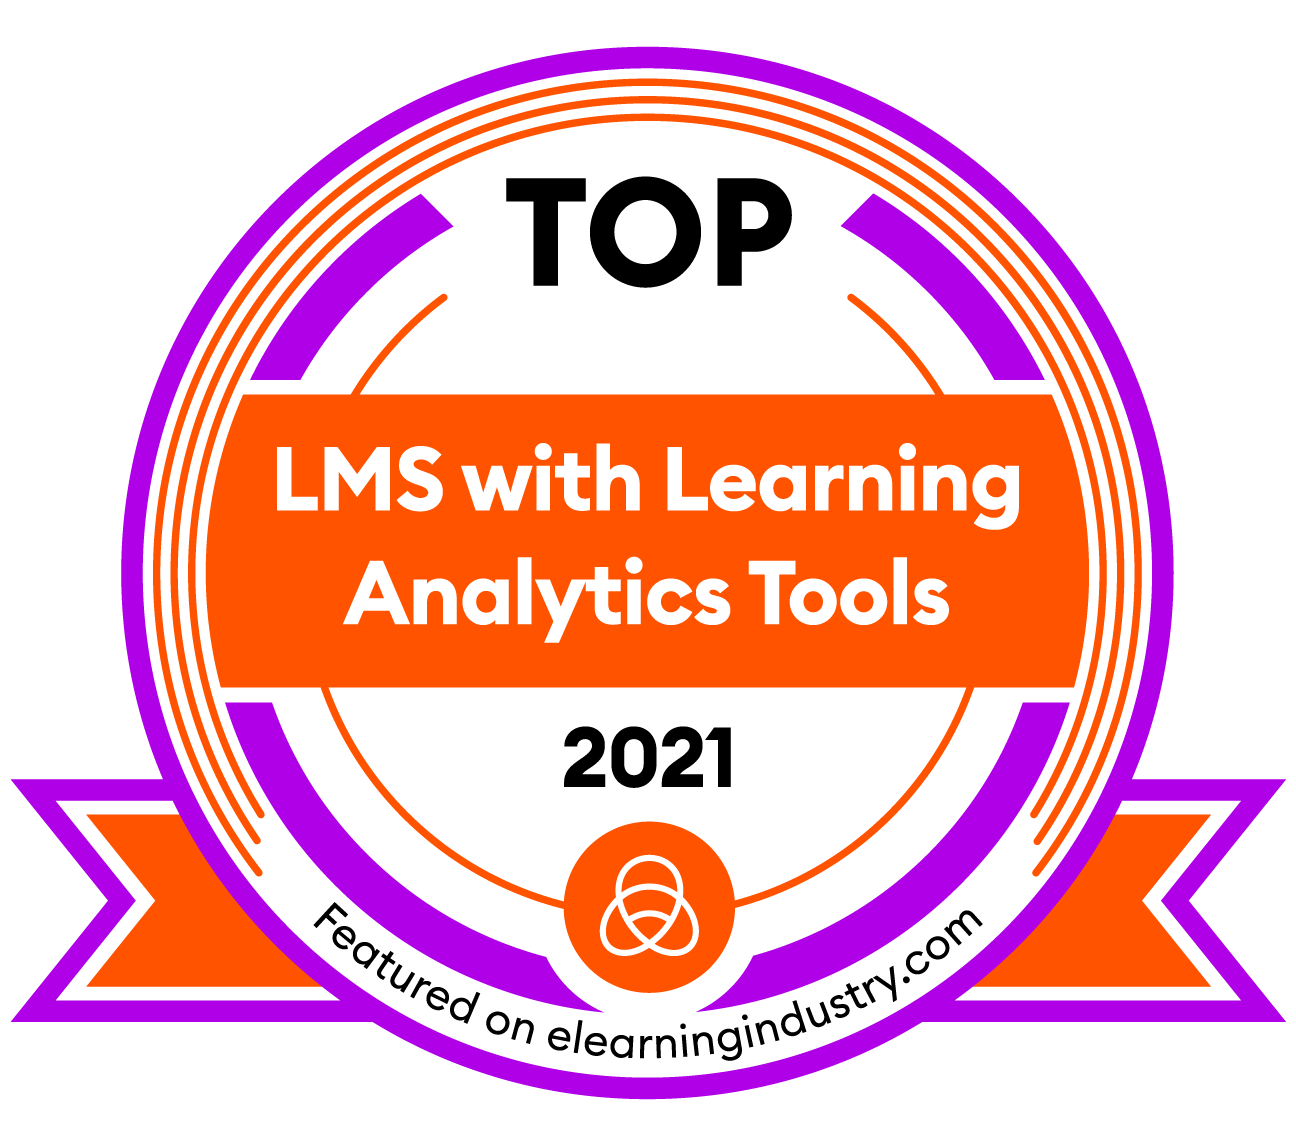 Top-LMS-with-Learning-Analytics-Tools